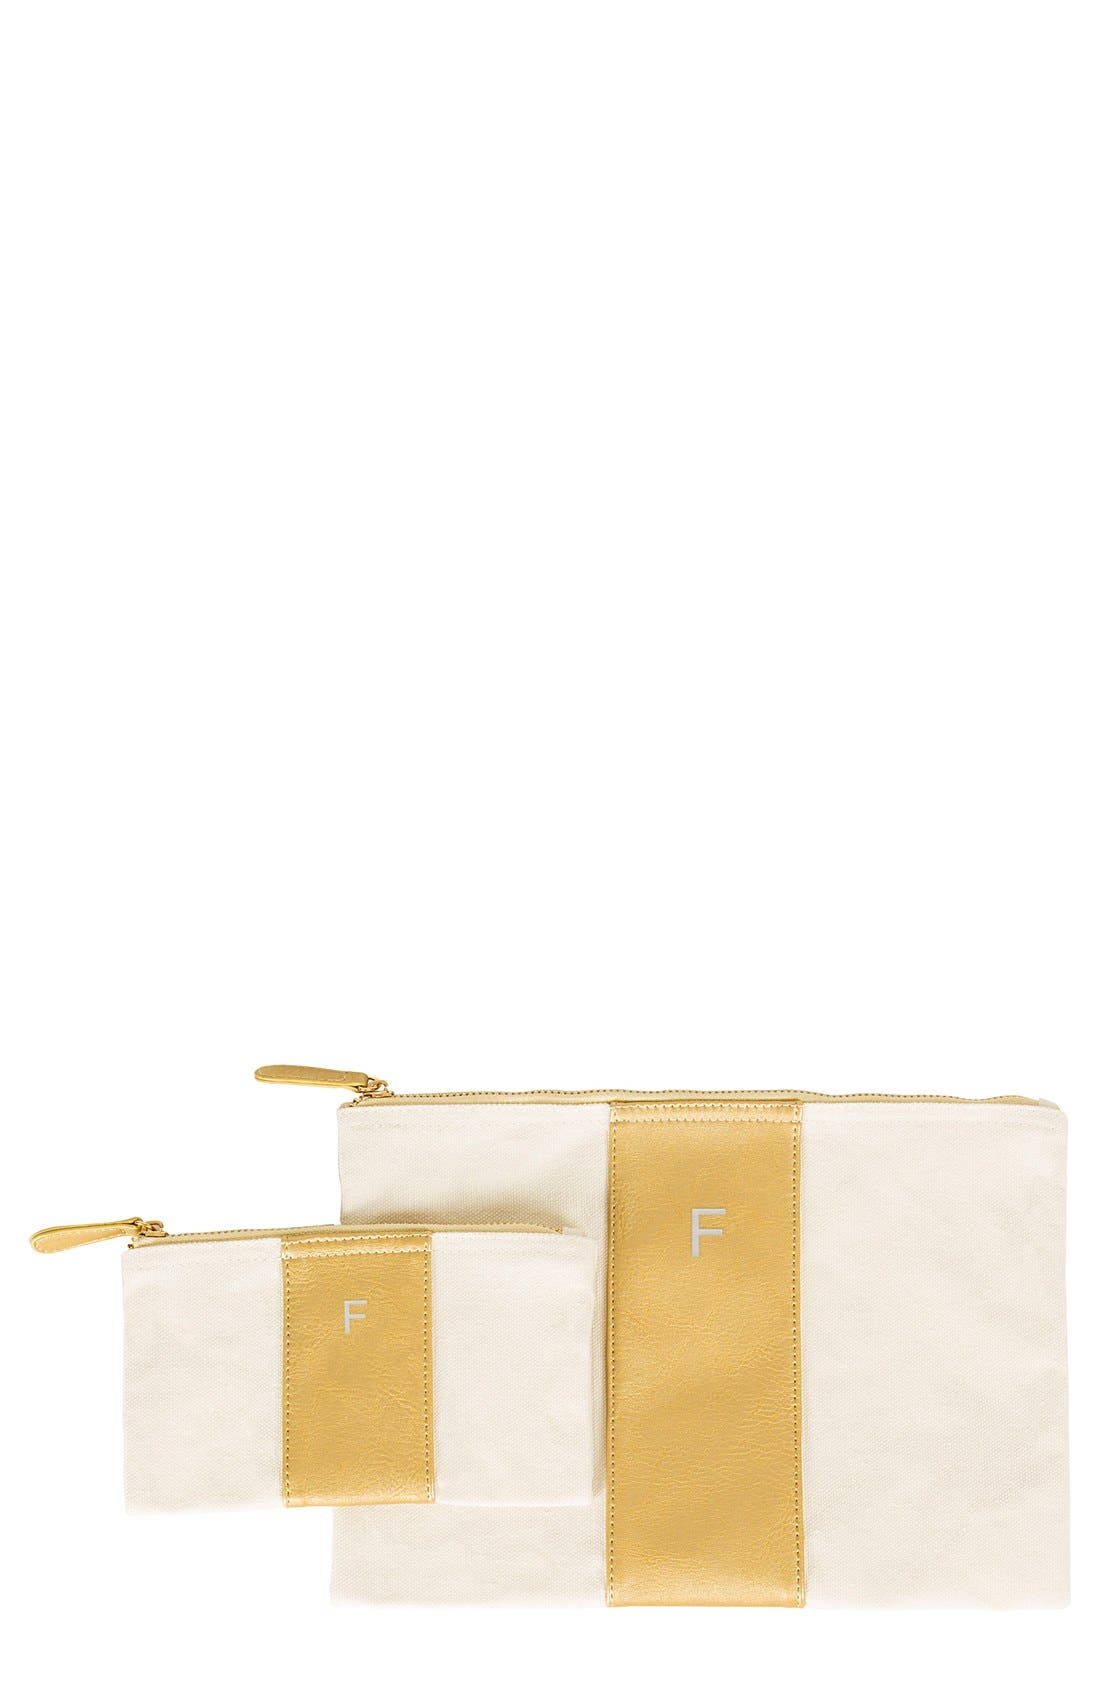 Personalized Faux Leather Clutch,                             Main thumbnail 44, color,